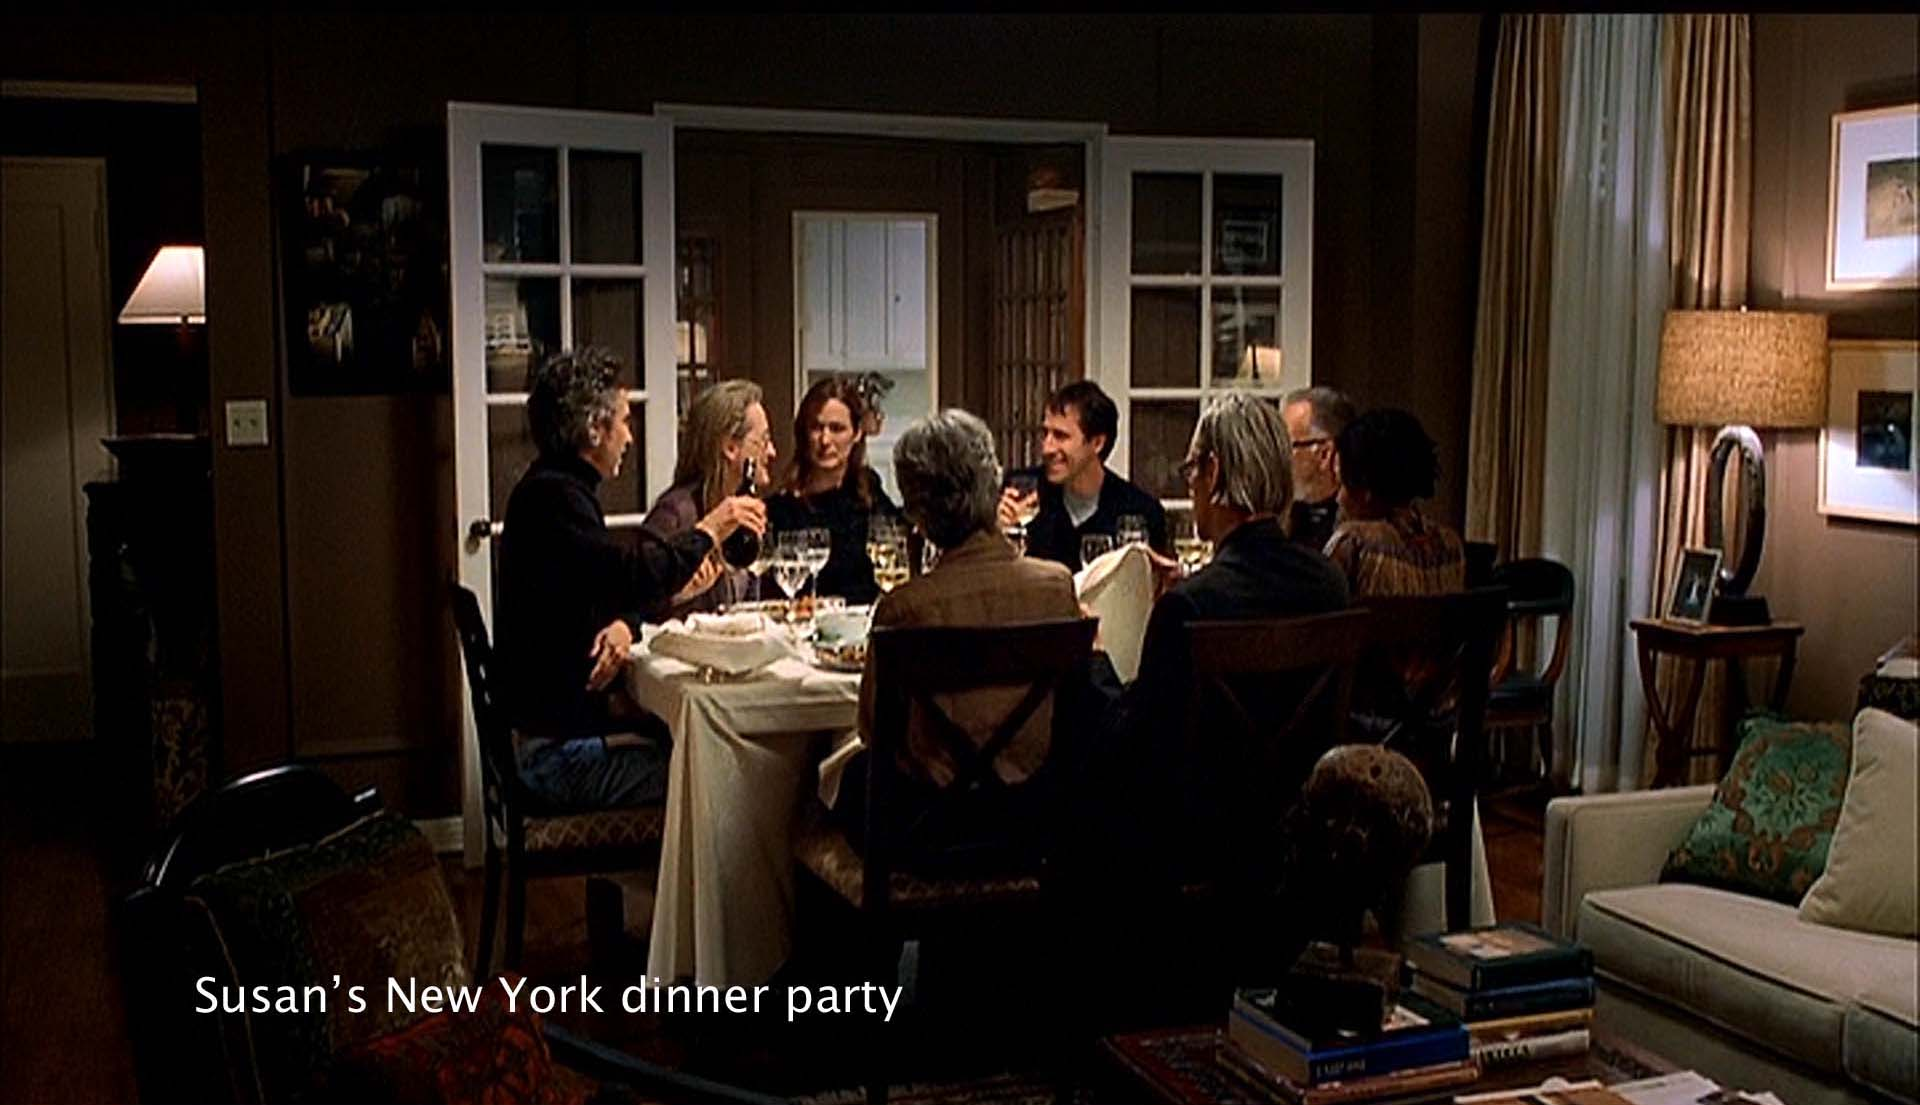 Susan's New York dinner party